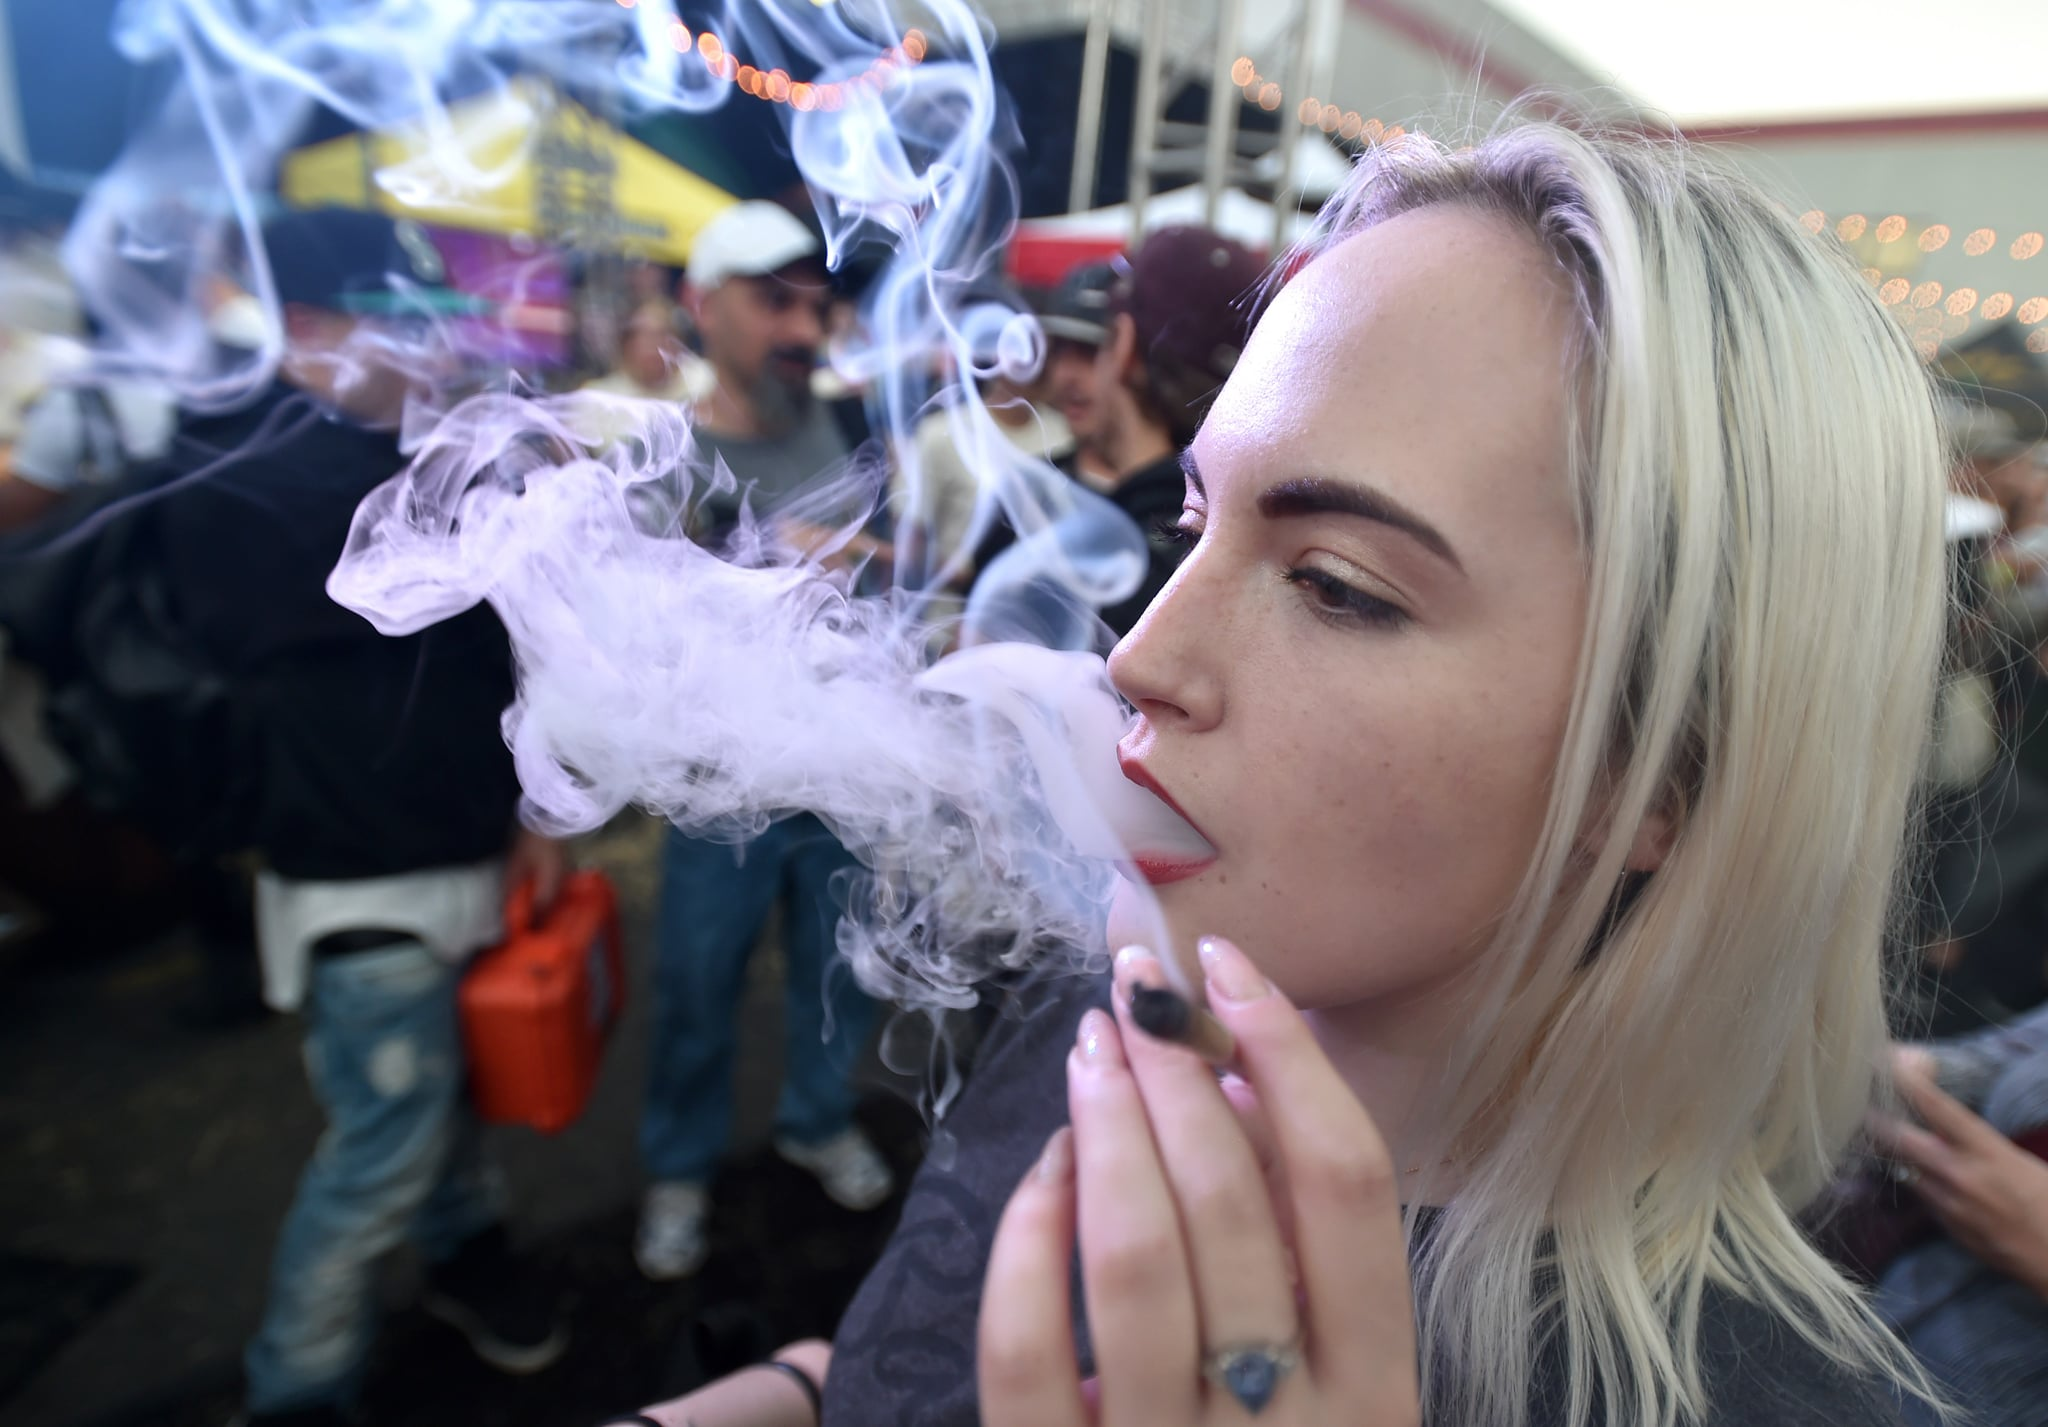 A woman from Seattle, smokes a joint at the first annual DOPE Cup, a cannabis competition in Portland, Oregon, on October 4, 2015. As of October 1, 2015 limited amounts of recreational marijuana became legal for all adults over the age of 21 to purchase in the state of Oregon. AFP PHOTO/JOSH EDELSON        (Photo credit should read Josh Edelson/AFP/Getty Images)